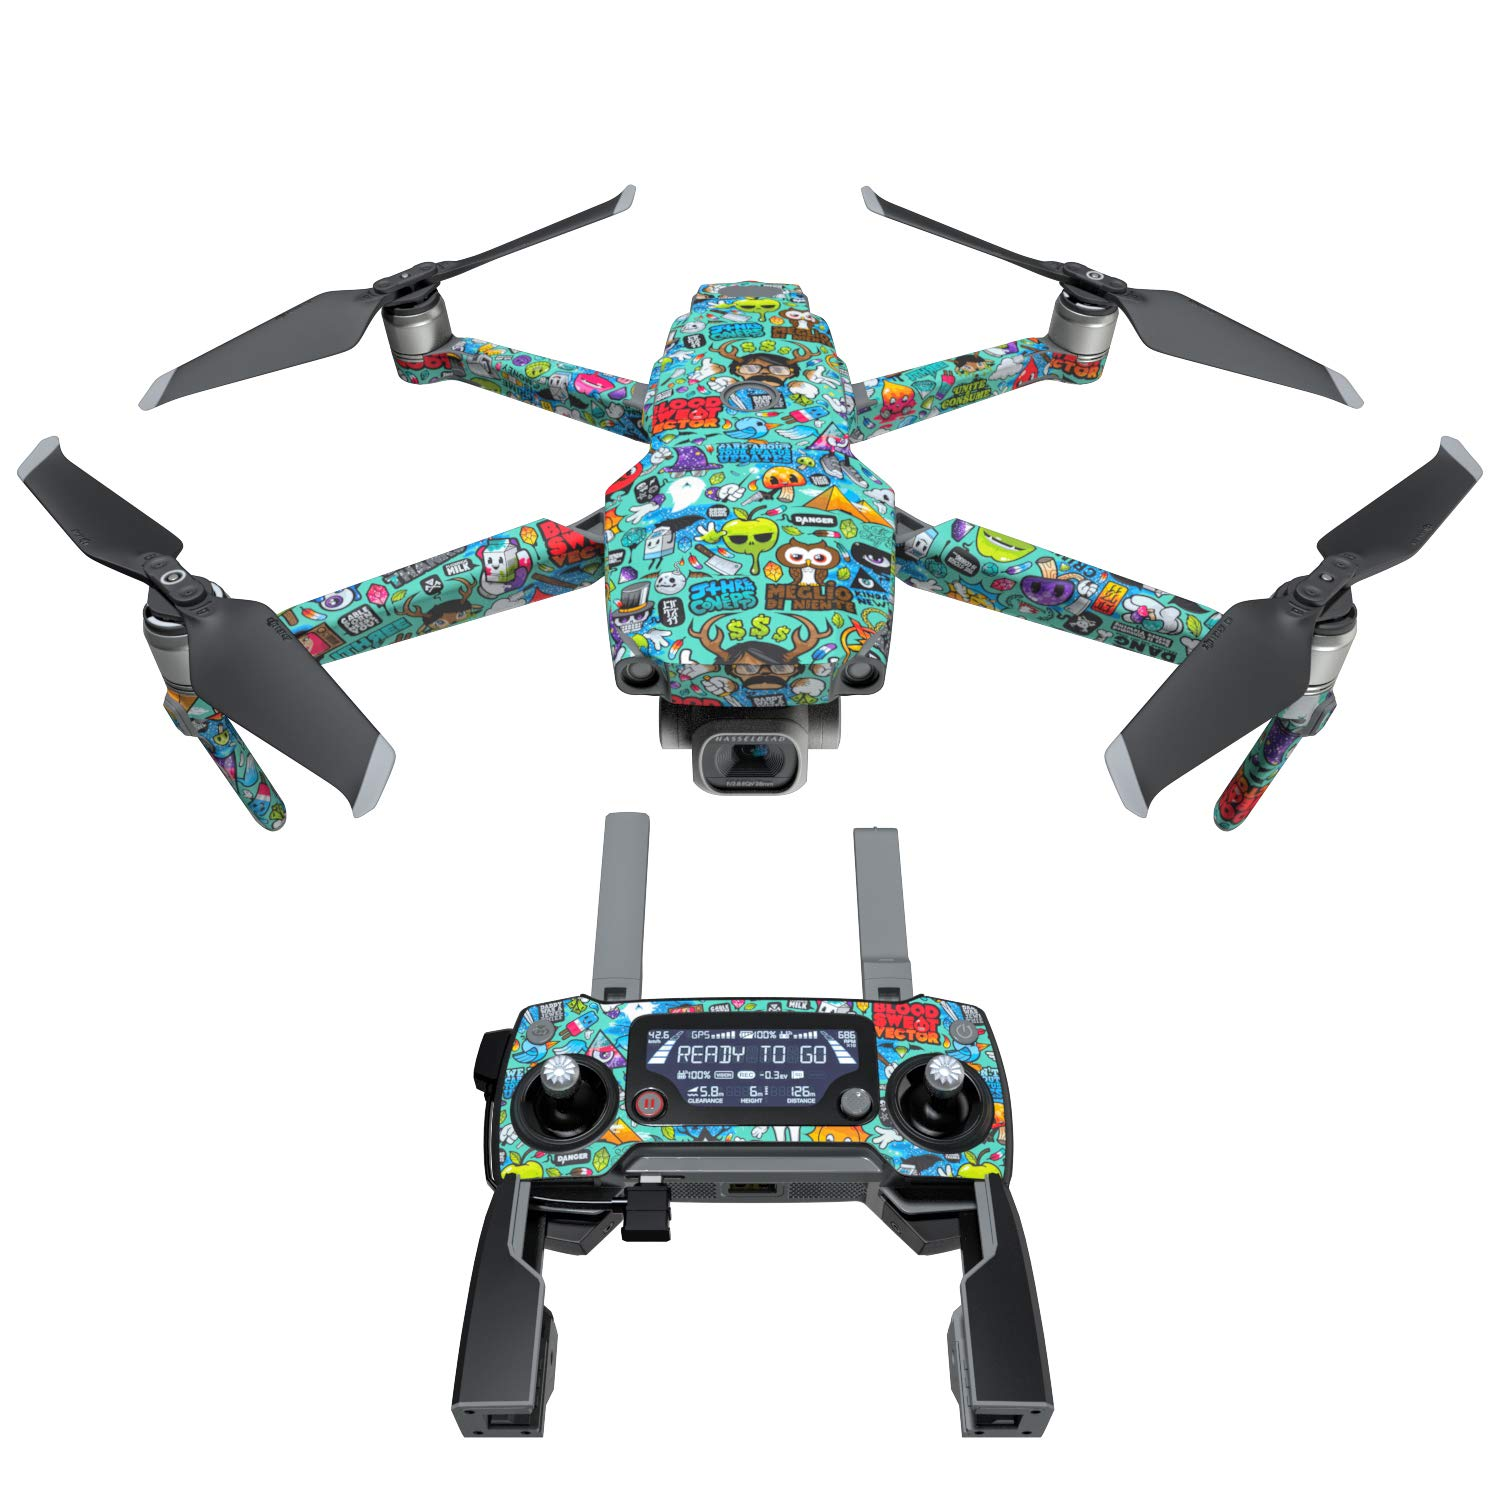 Jewel Thief Decal Kit for DJI Mavic 2/Zoom Drone - Includes 1 x Drone/Battery Skin + Controller Skin